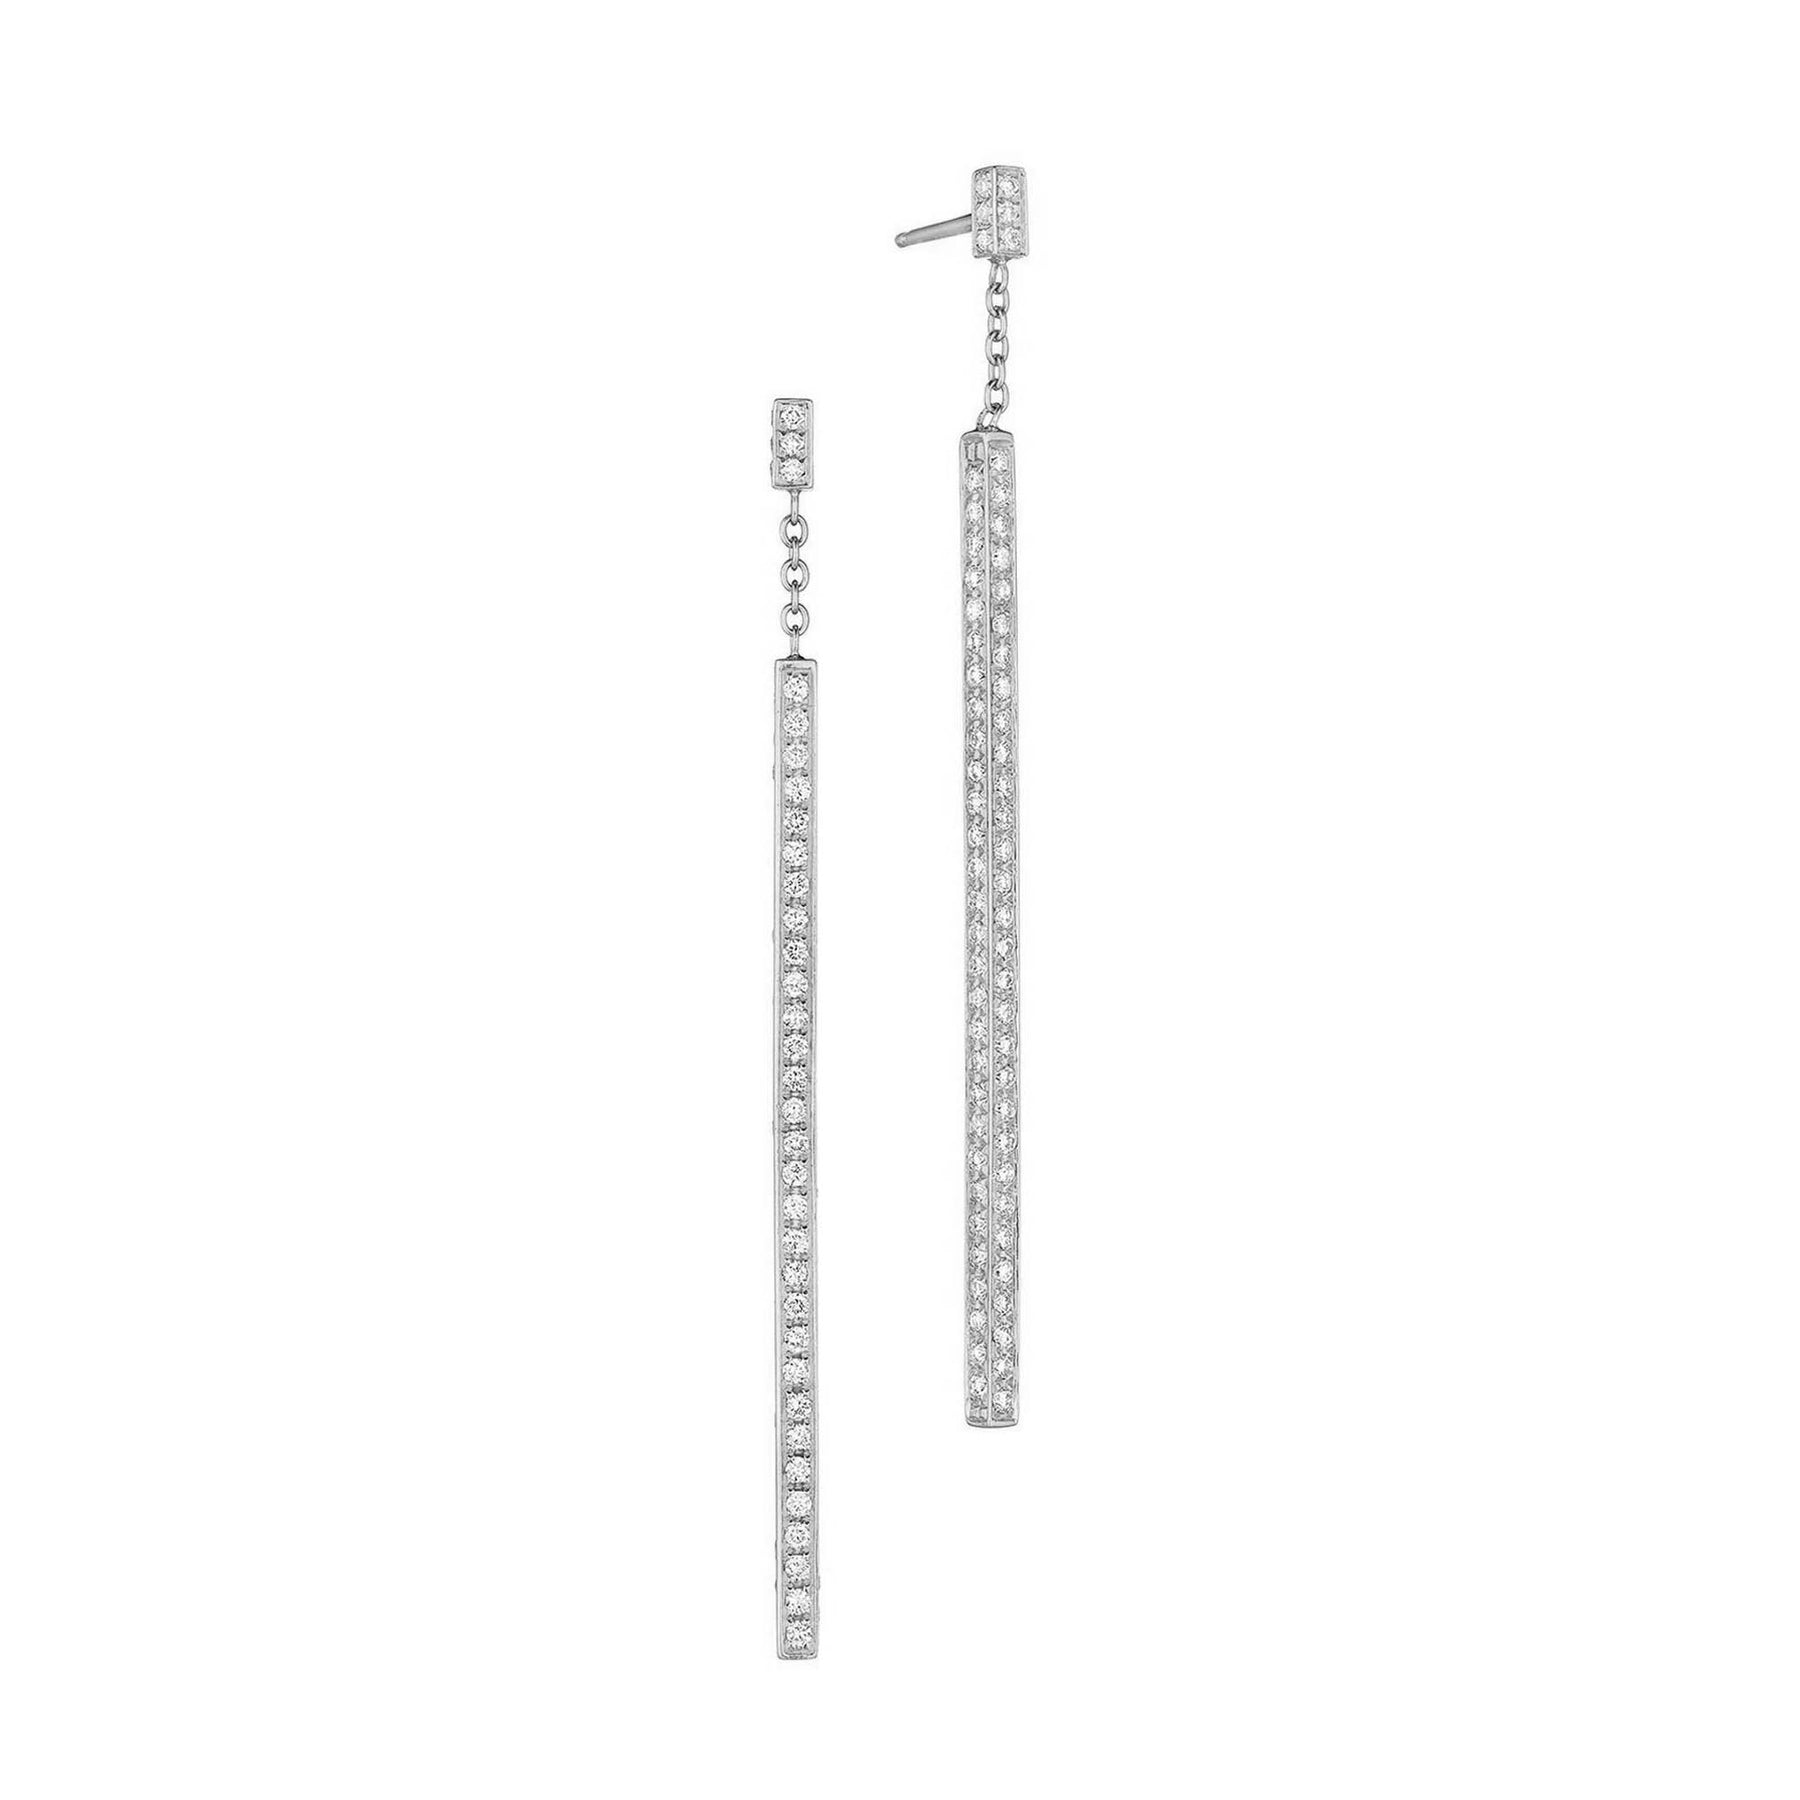 Mimi-So-Piece-Stick-3D-Diamond-Earrings_18k White Gold